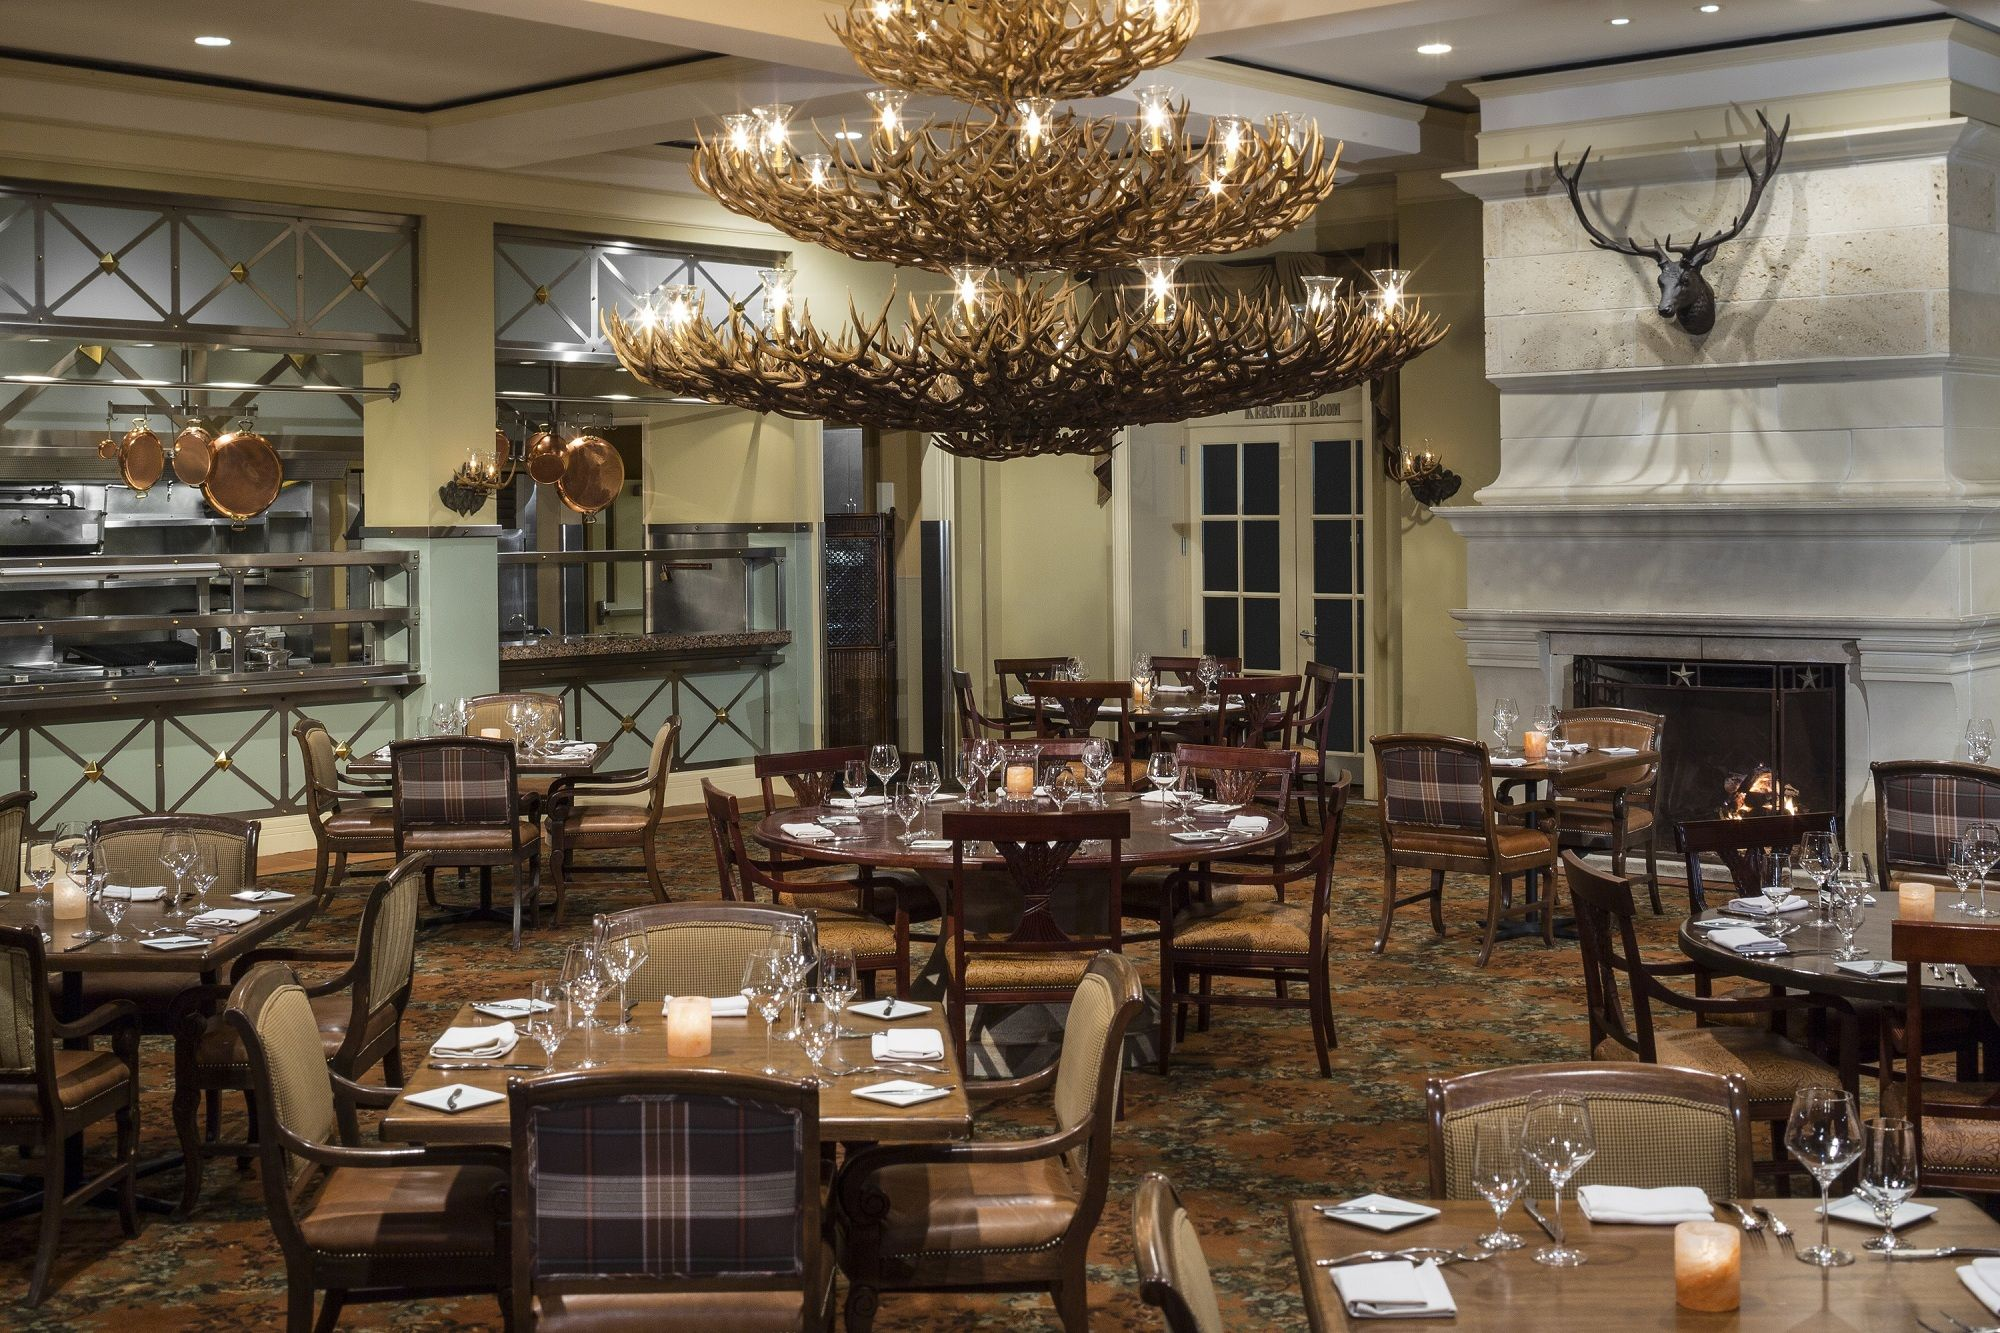 San Antonio Fine Dining Restaurants Texas Hill Country In Upscale